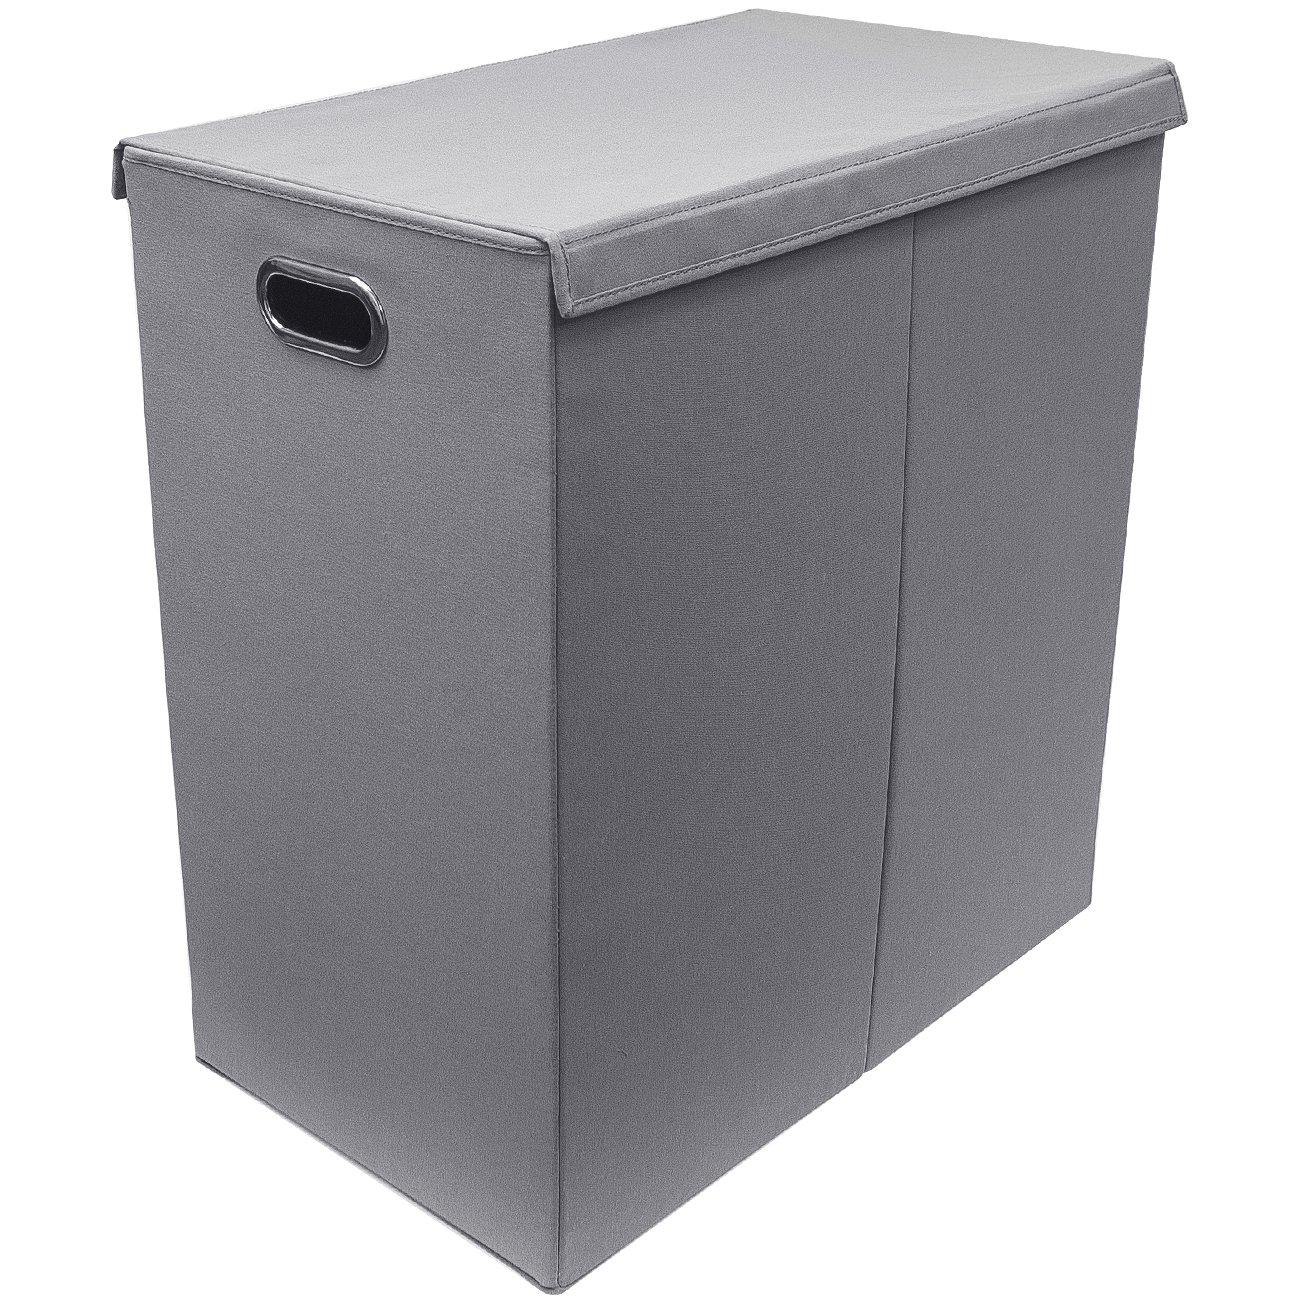 Laundry Hamper With Wheels Part - 37: Sorbus Laundry Hamper Sorter With Lid Closure - Double (Grey)